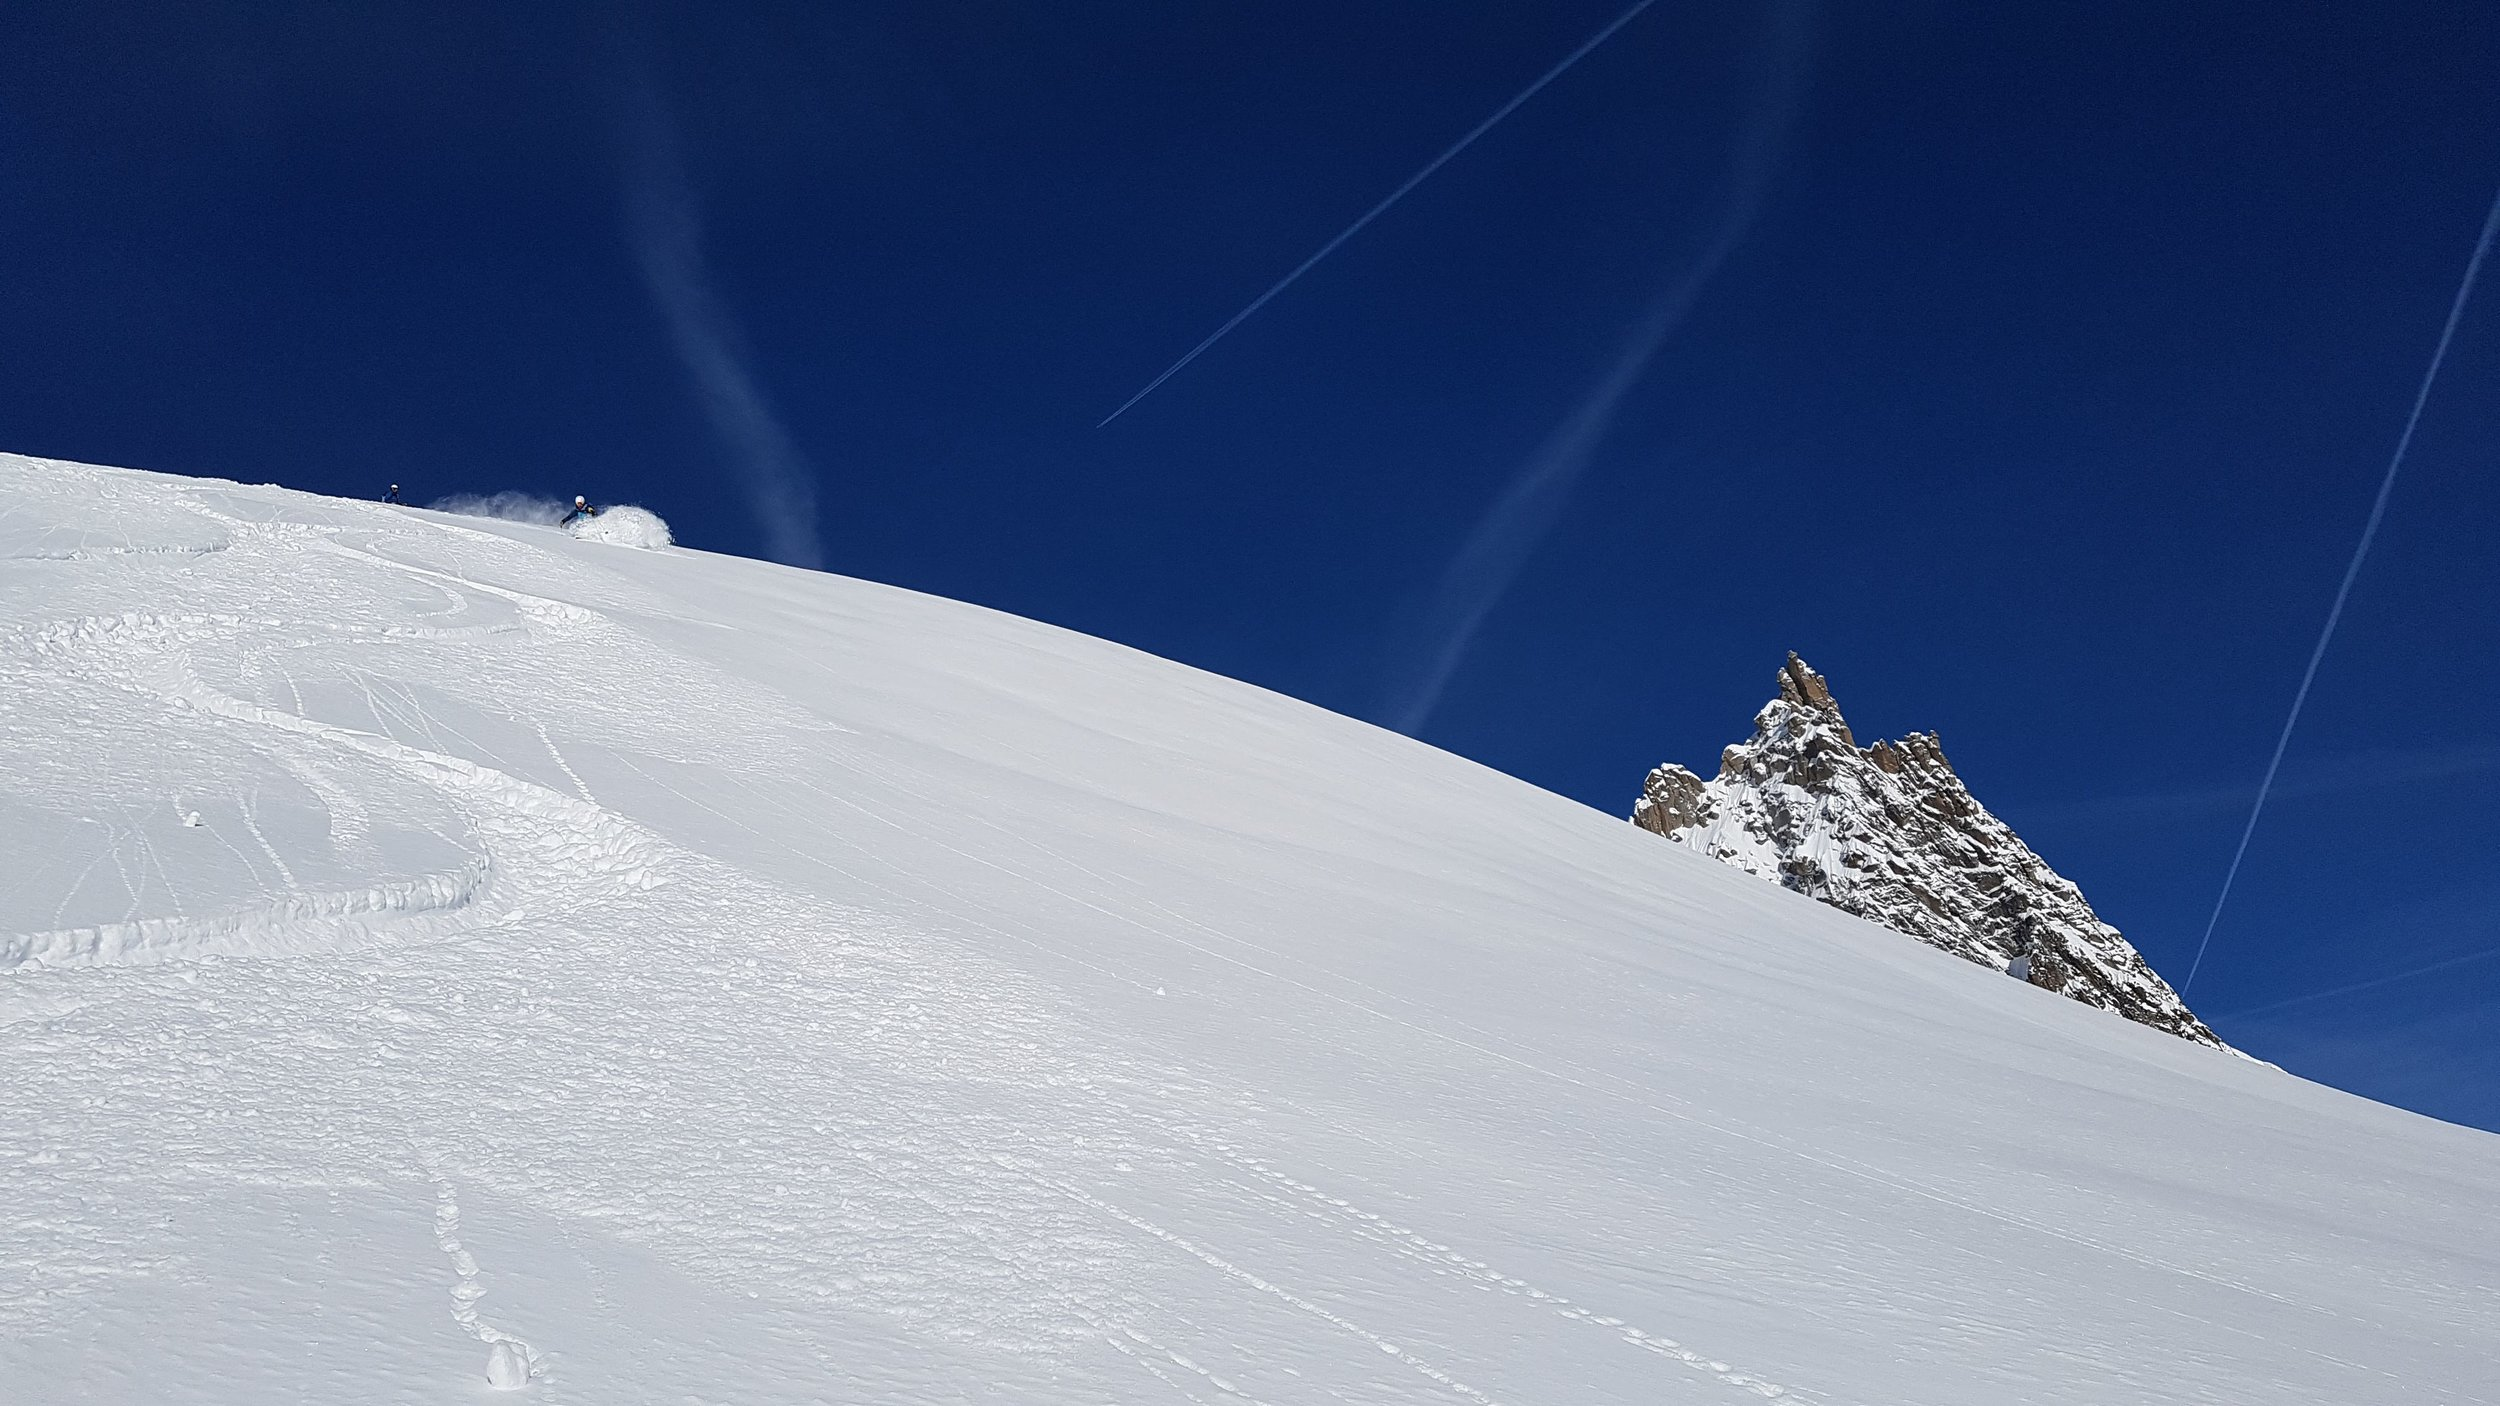 Fresh tracks on the Vallee Blanche last week